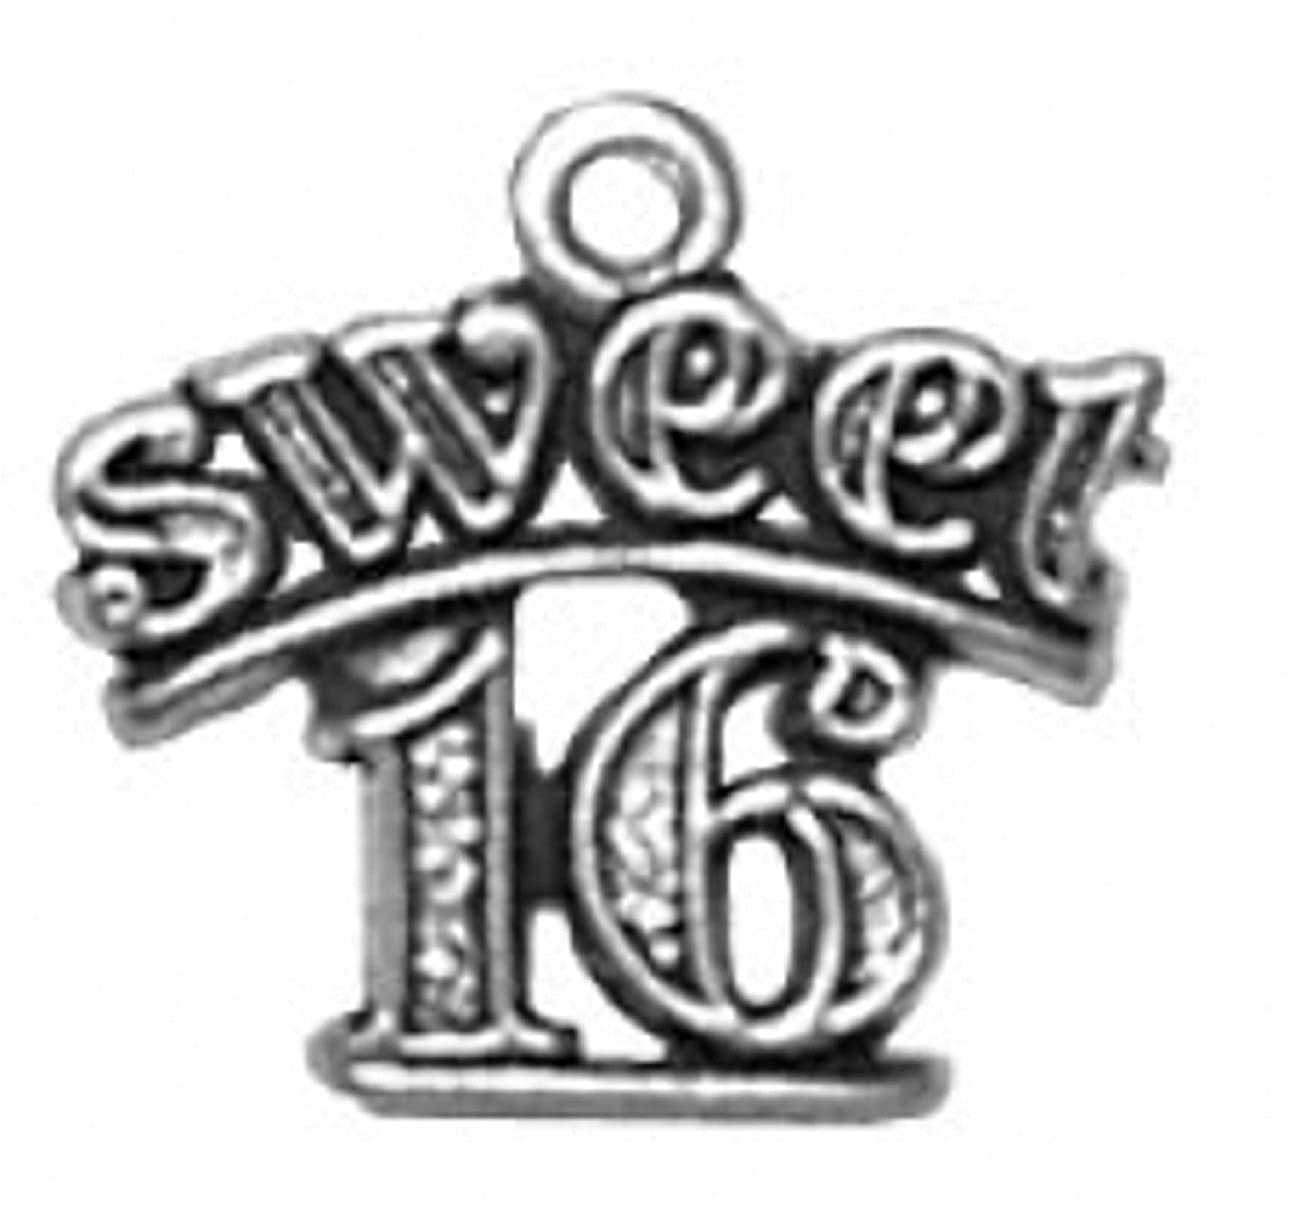 Sterling Silver 7 4.5mm Charm Bracelet With Attached SWEET Sixteen 16 Birthday Word Charm